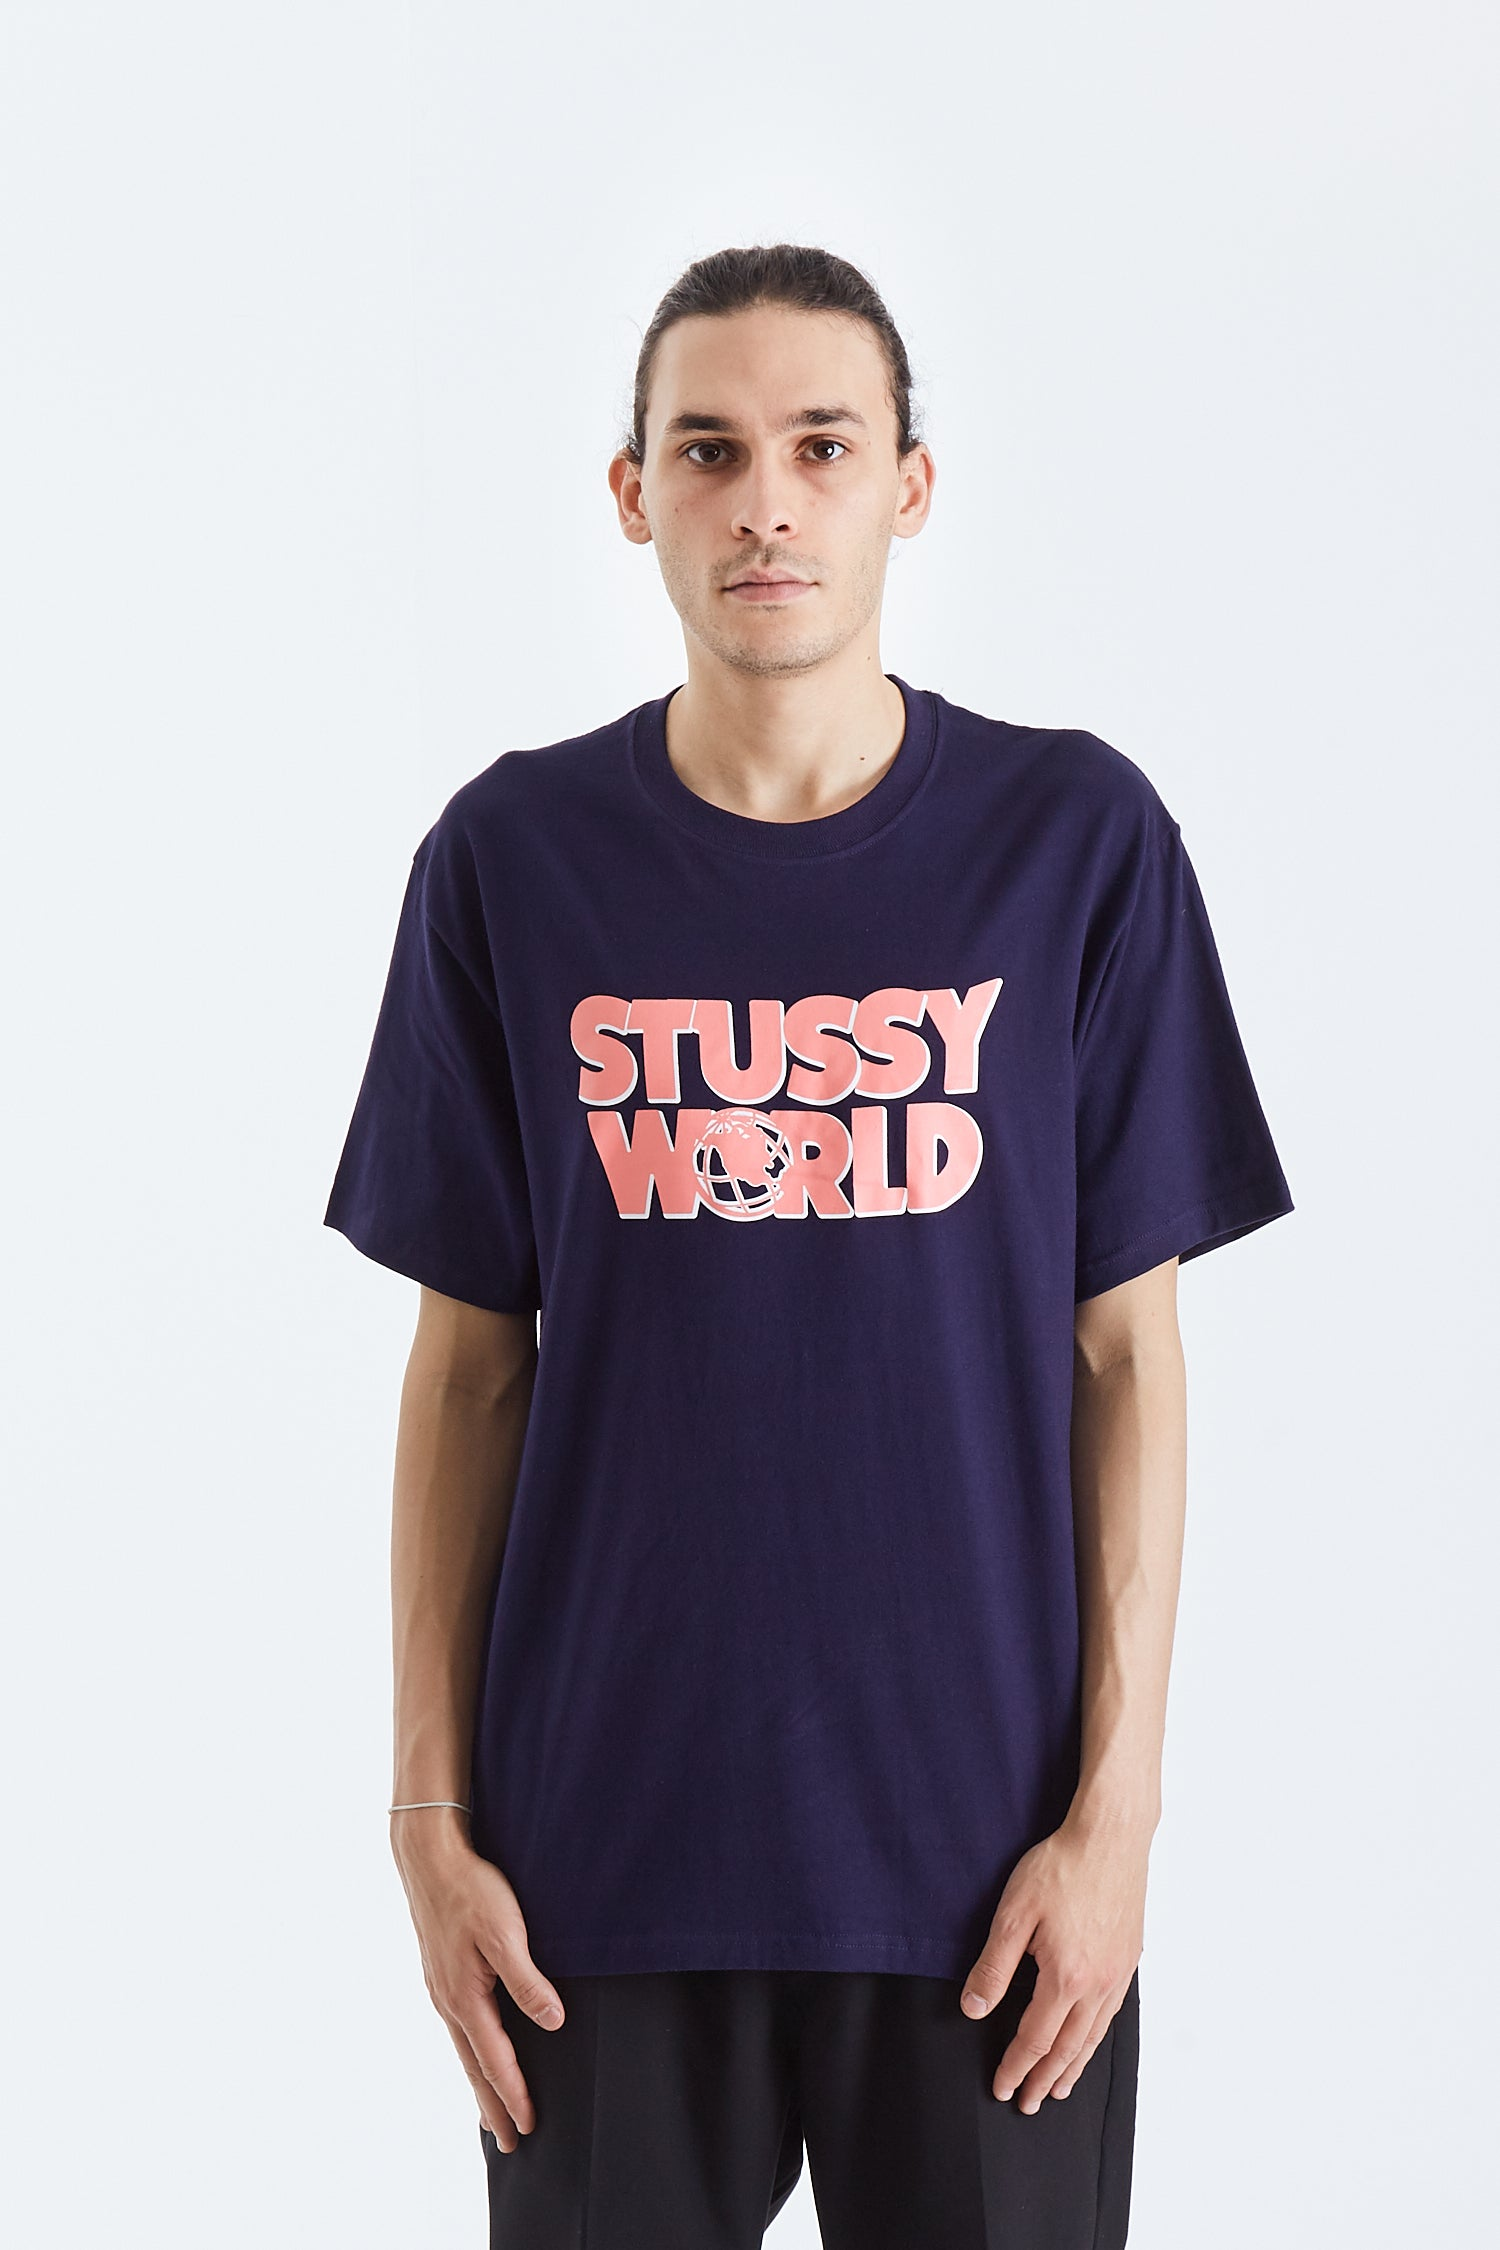 Stussy World Tee